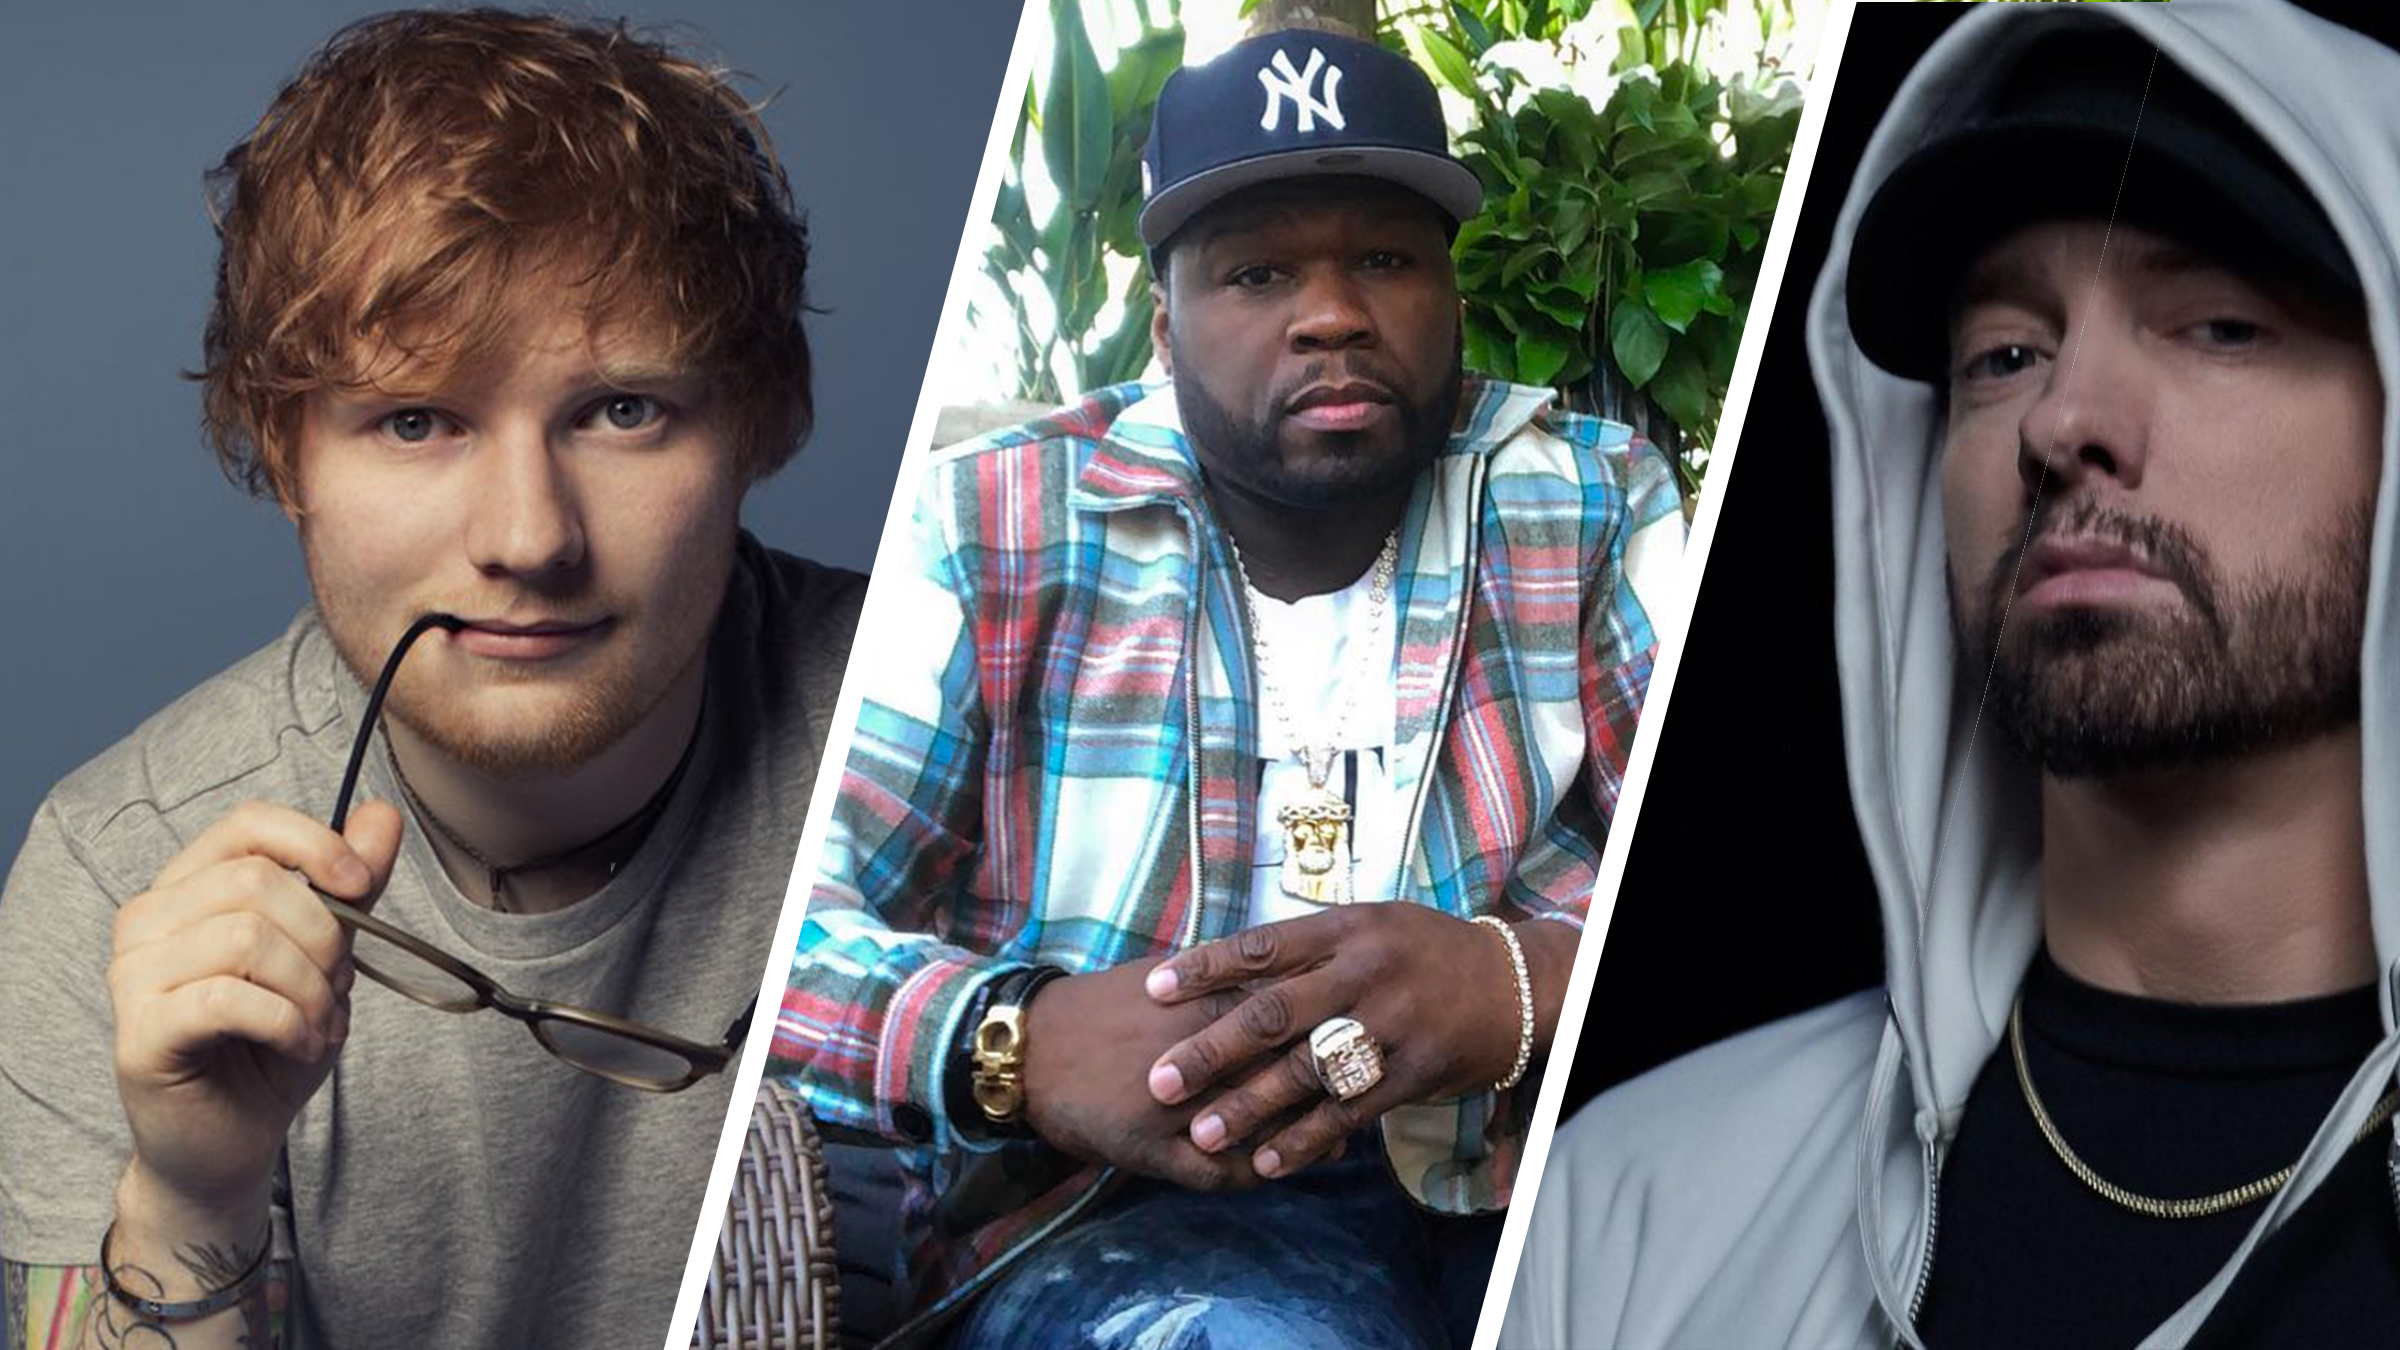 Ed sheeran eminem 50cent